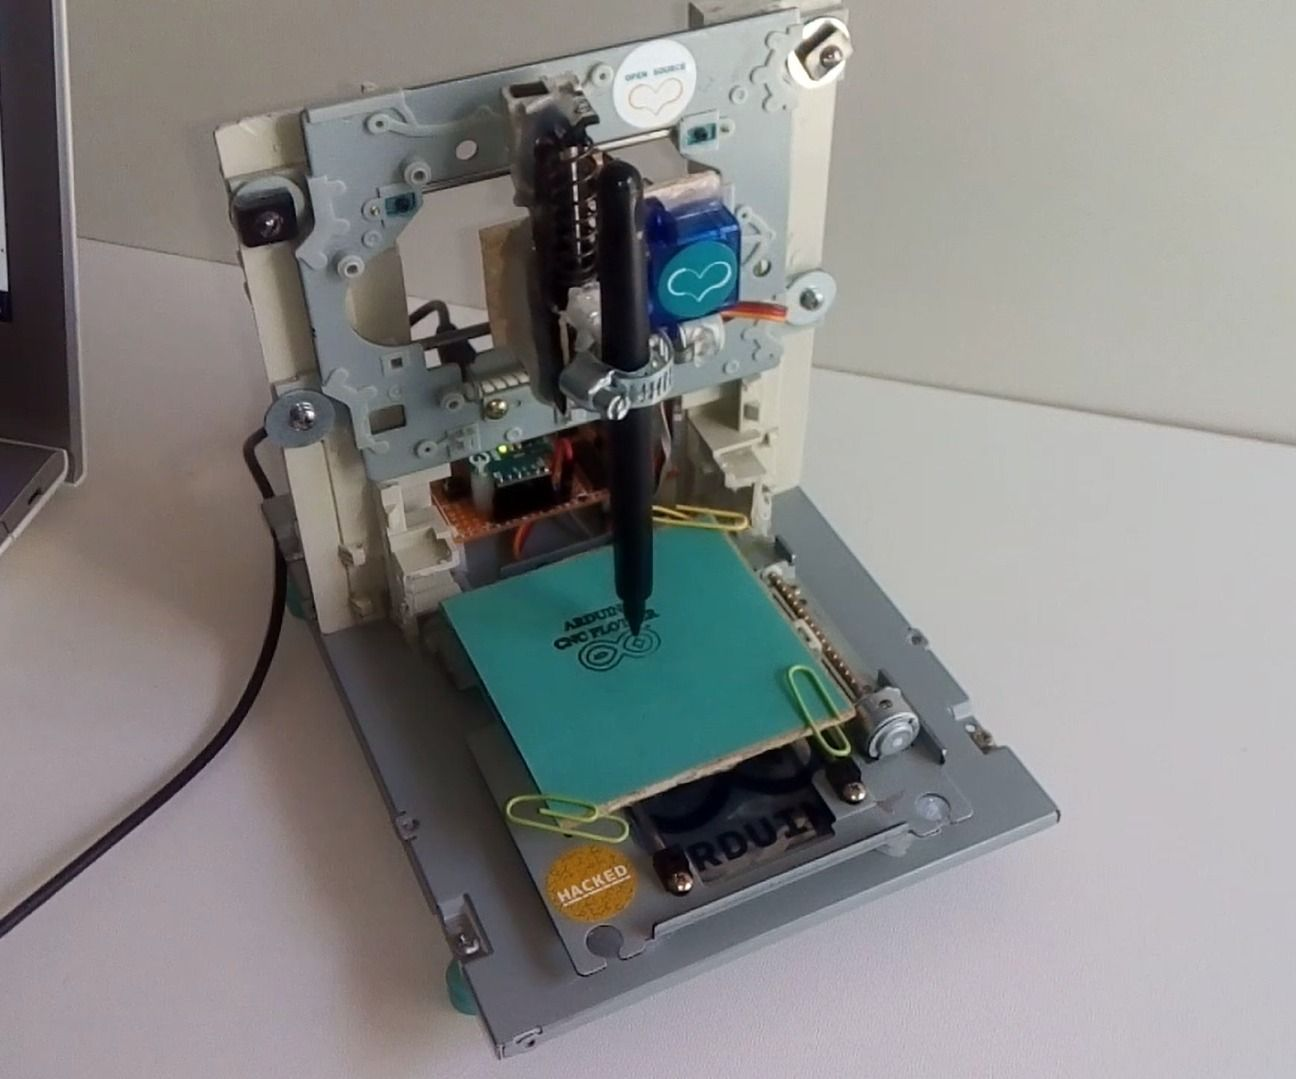 Mini cnc plotter arduino based for Low cost stepper motor